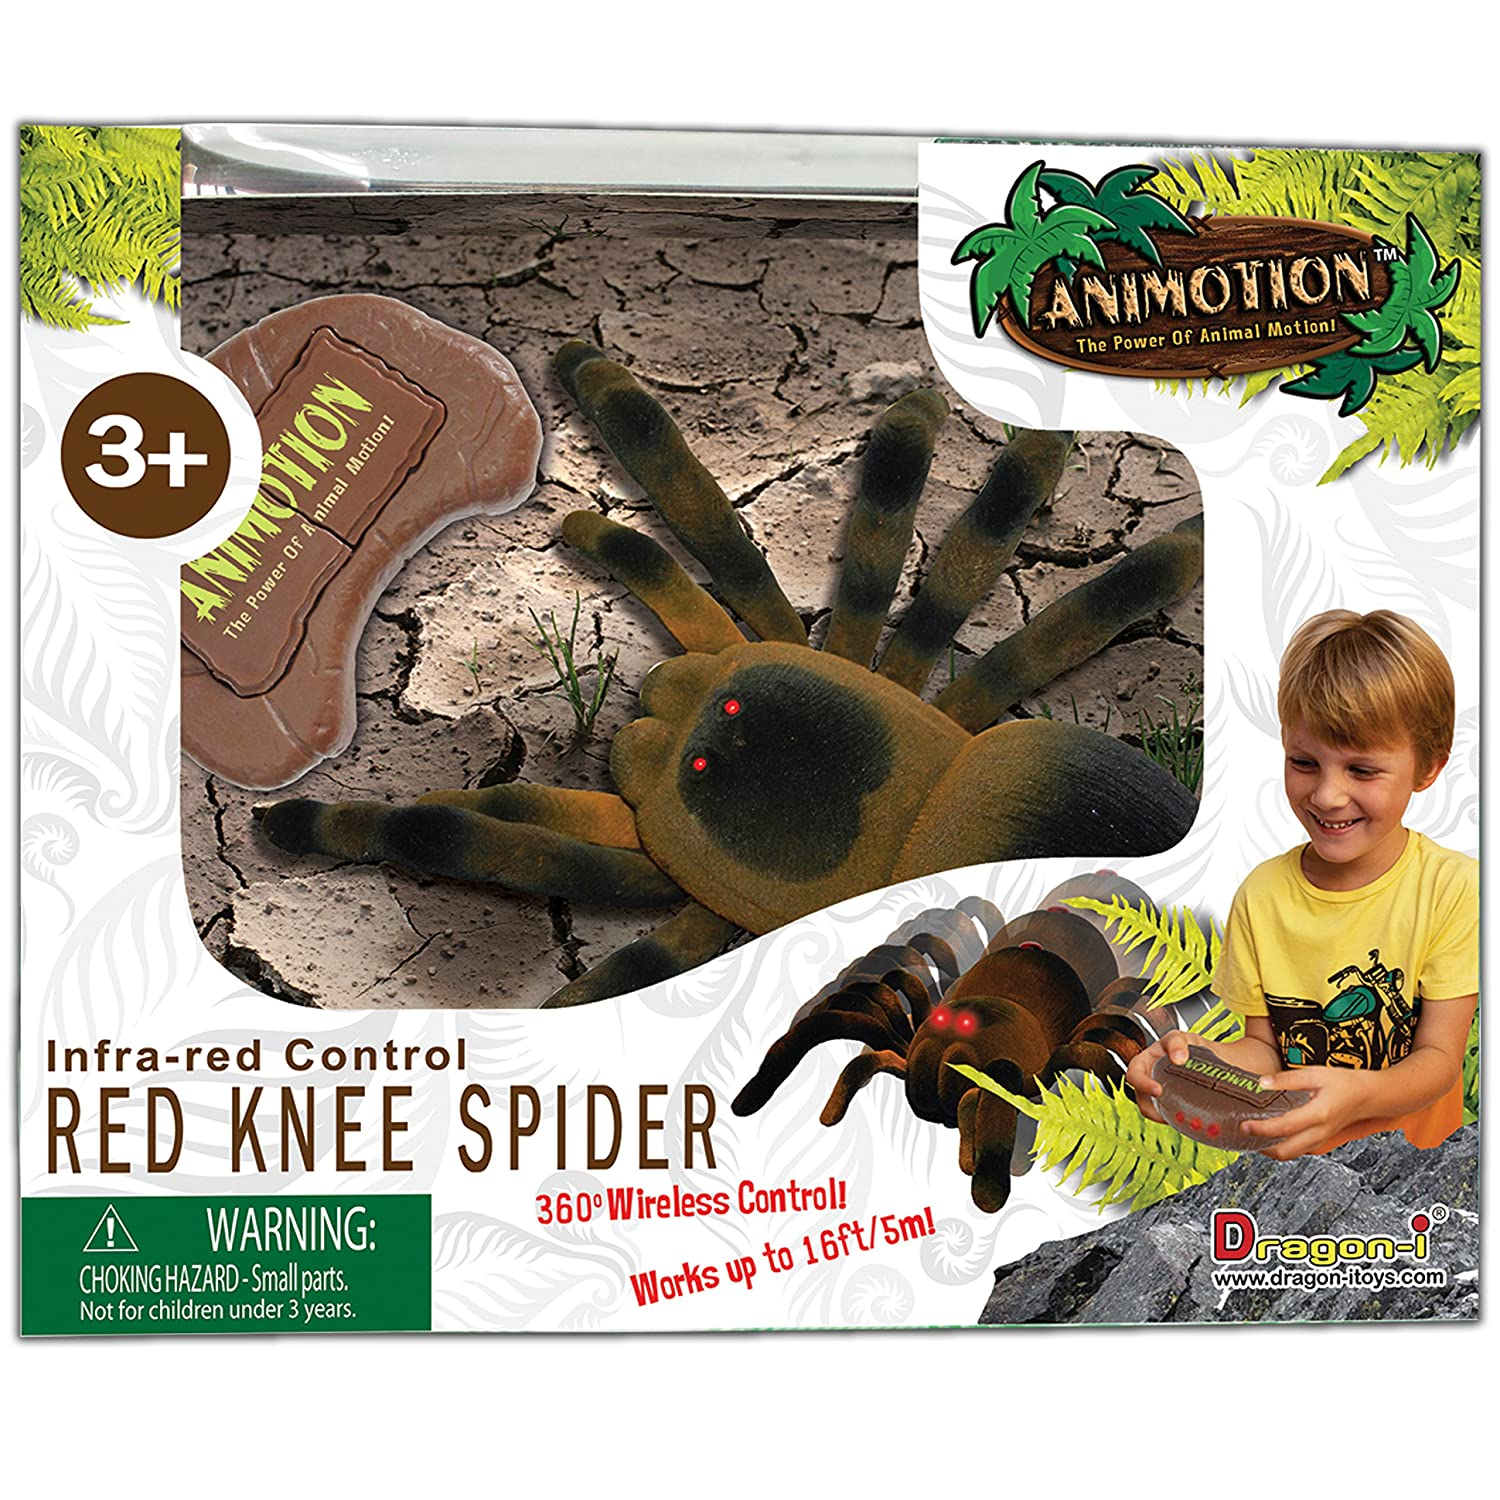 Dragon-I Infra-Red Knee Flocked Spider Toy Remote Controlled Vehicles(80055A)